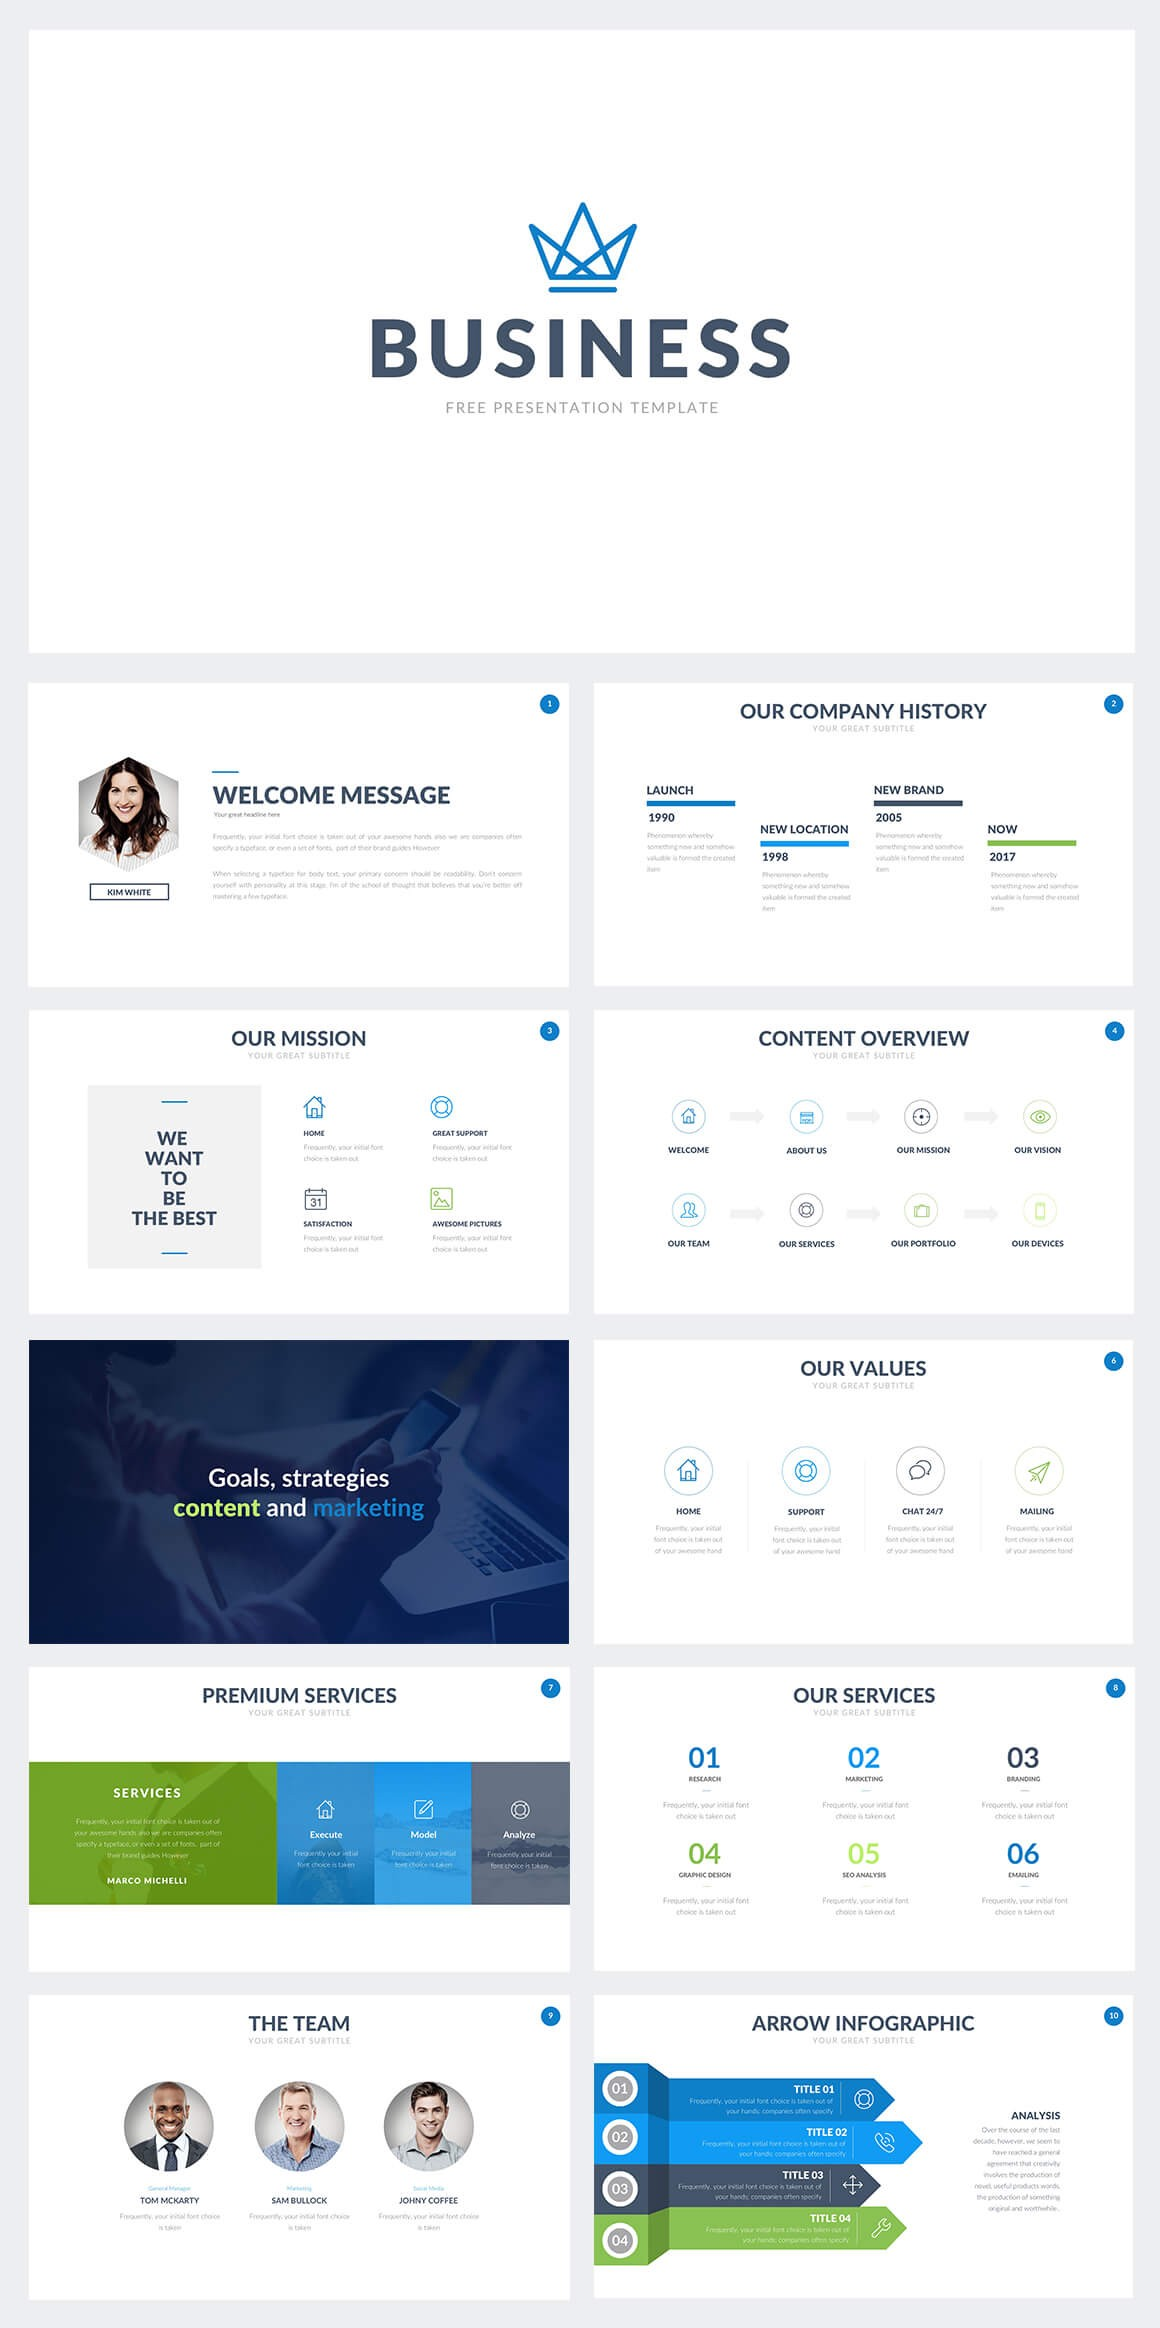 40 free cool powerpoint templates for presentations this business ppt template is great to show your companies values missions history and services take advantage of this free perfect business ppt cheaphphosting